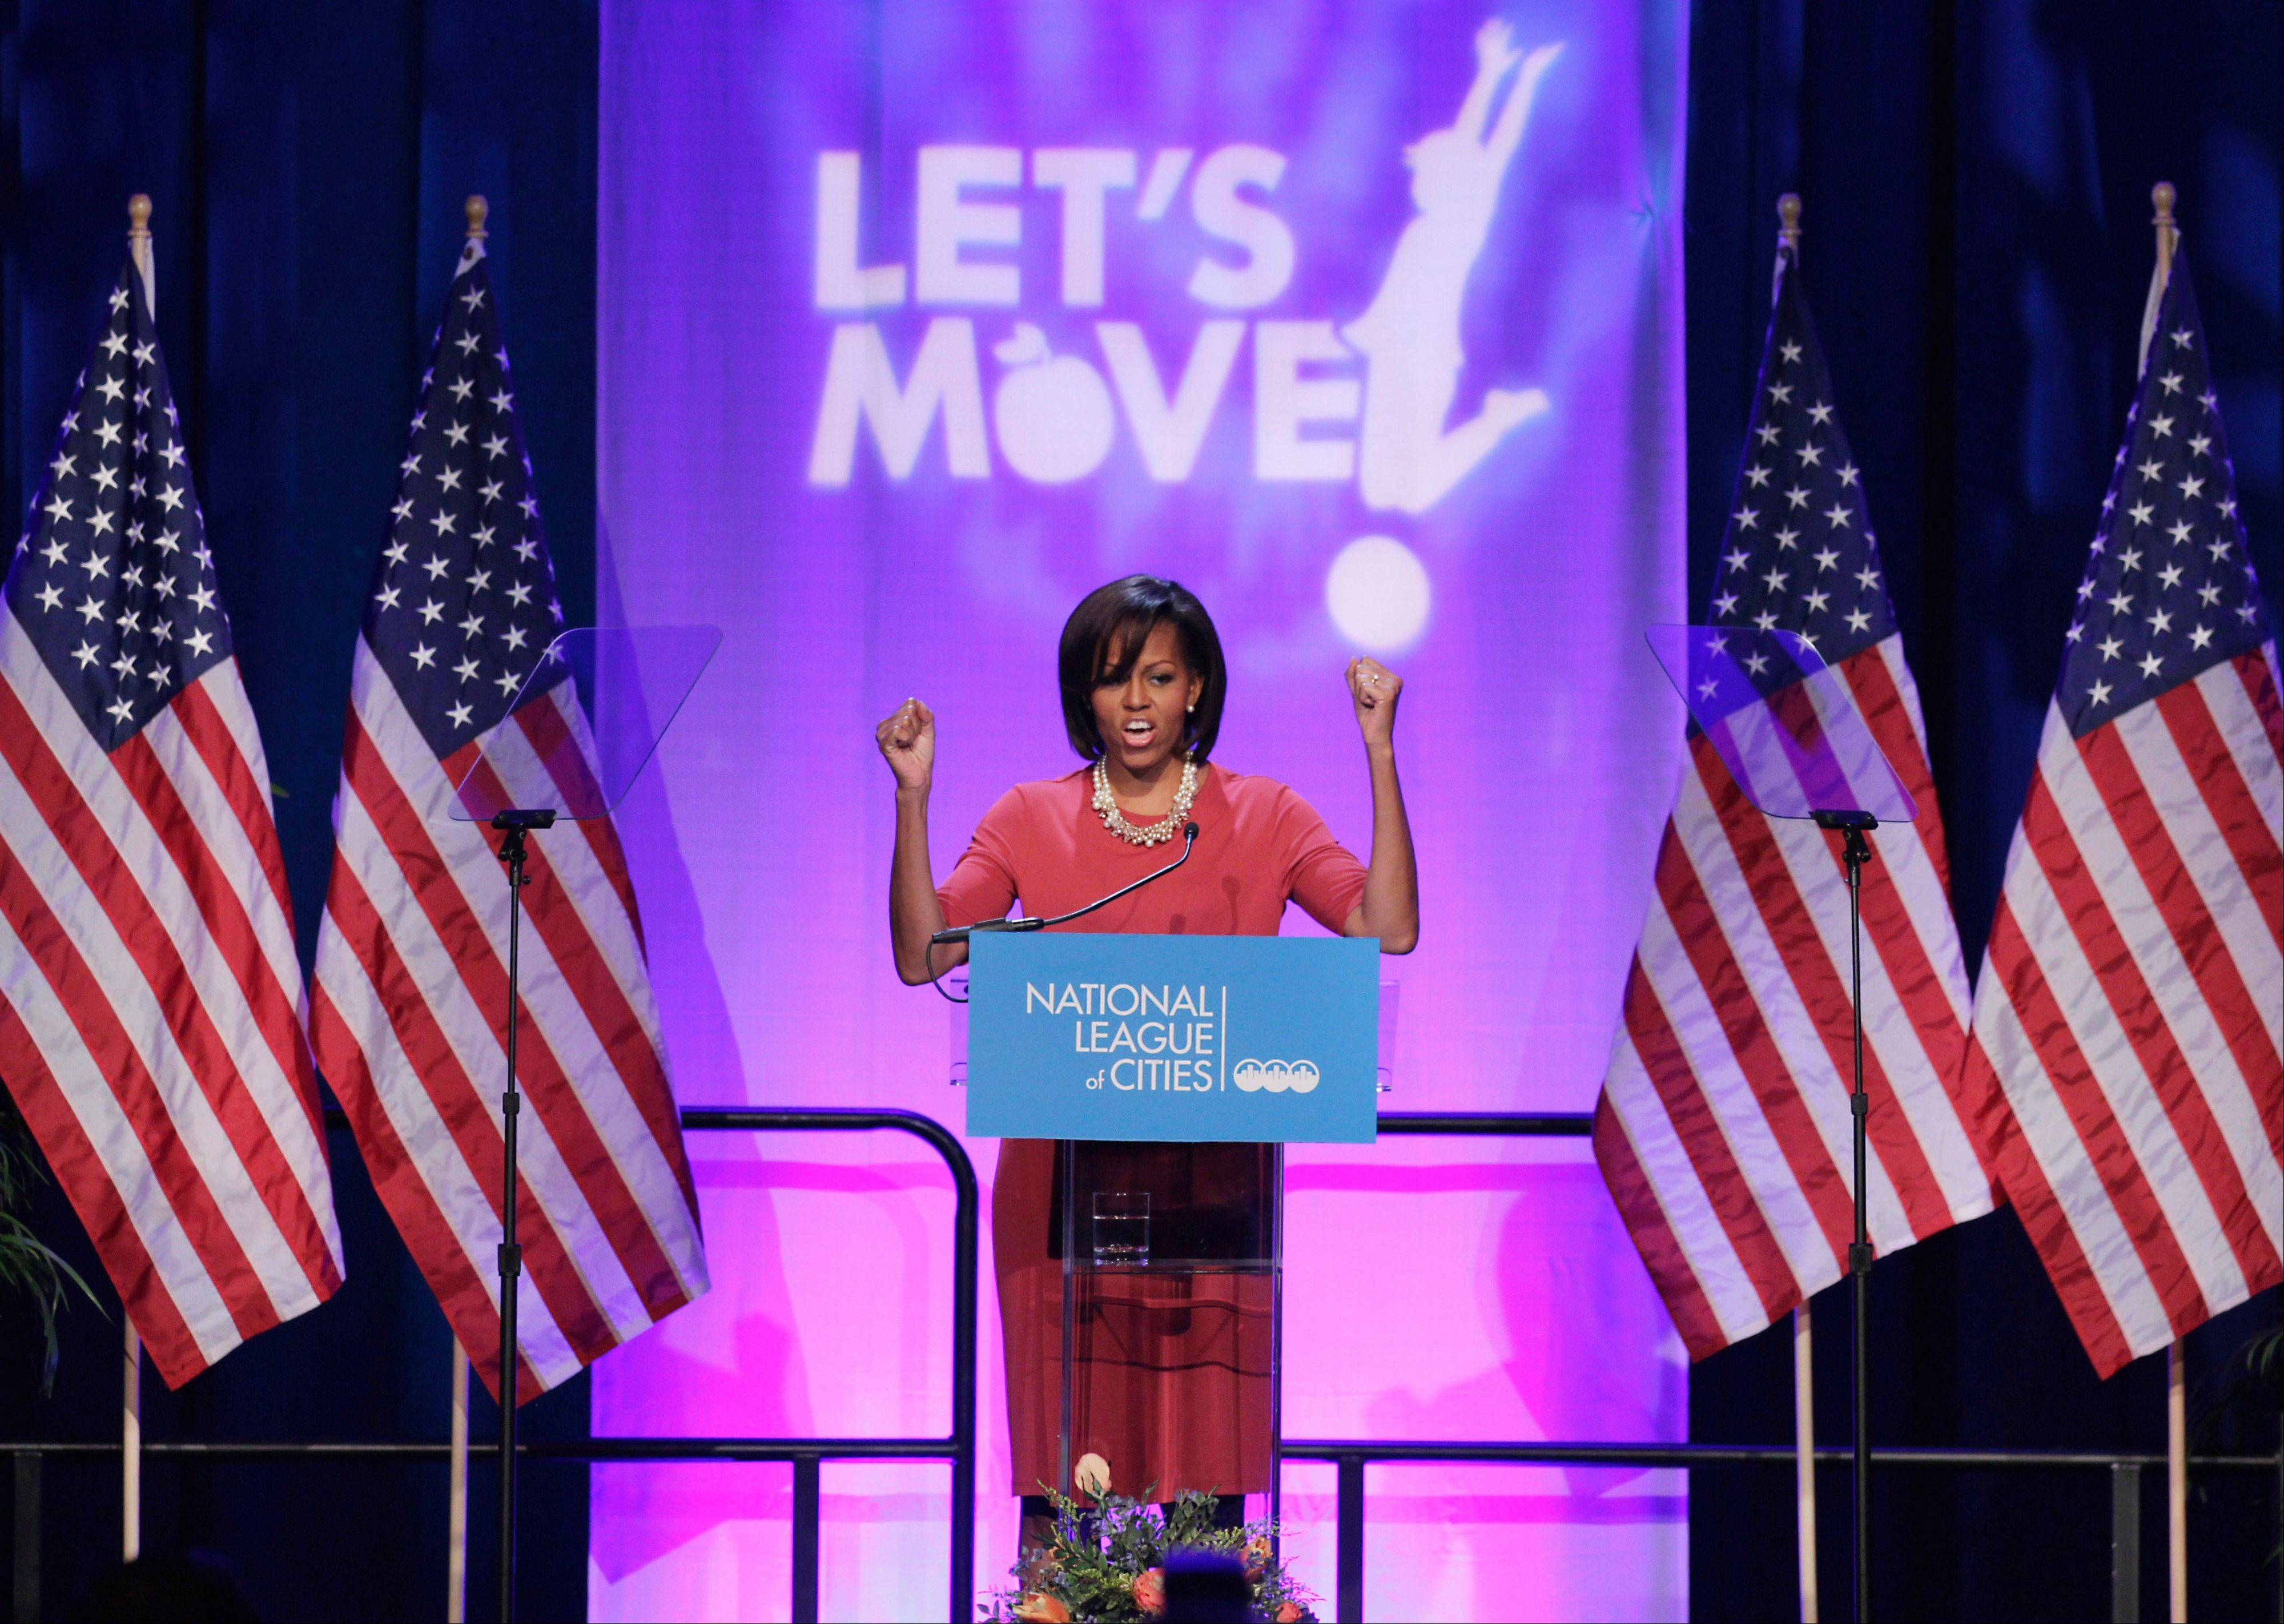 Associated Press File Photo, 2011 First lady Michelle Obama speaks at the National League of Cities Conference about the Let's Move! initiative in Washington. C-SPAN has teamed up with The White House Historical Association to produce a series on first ladies.